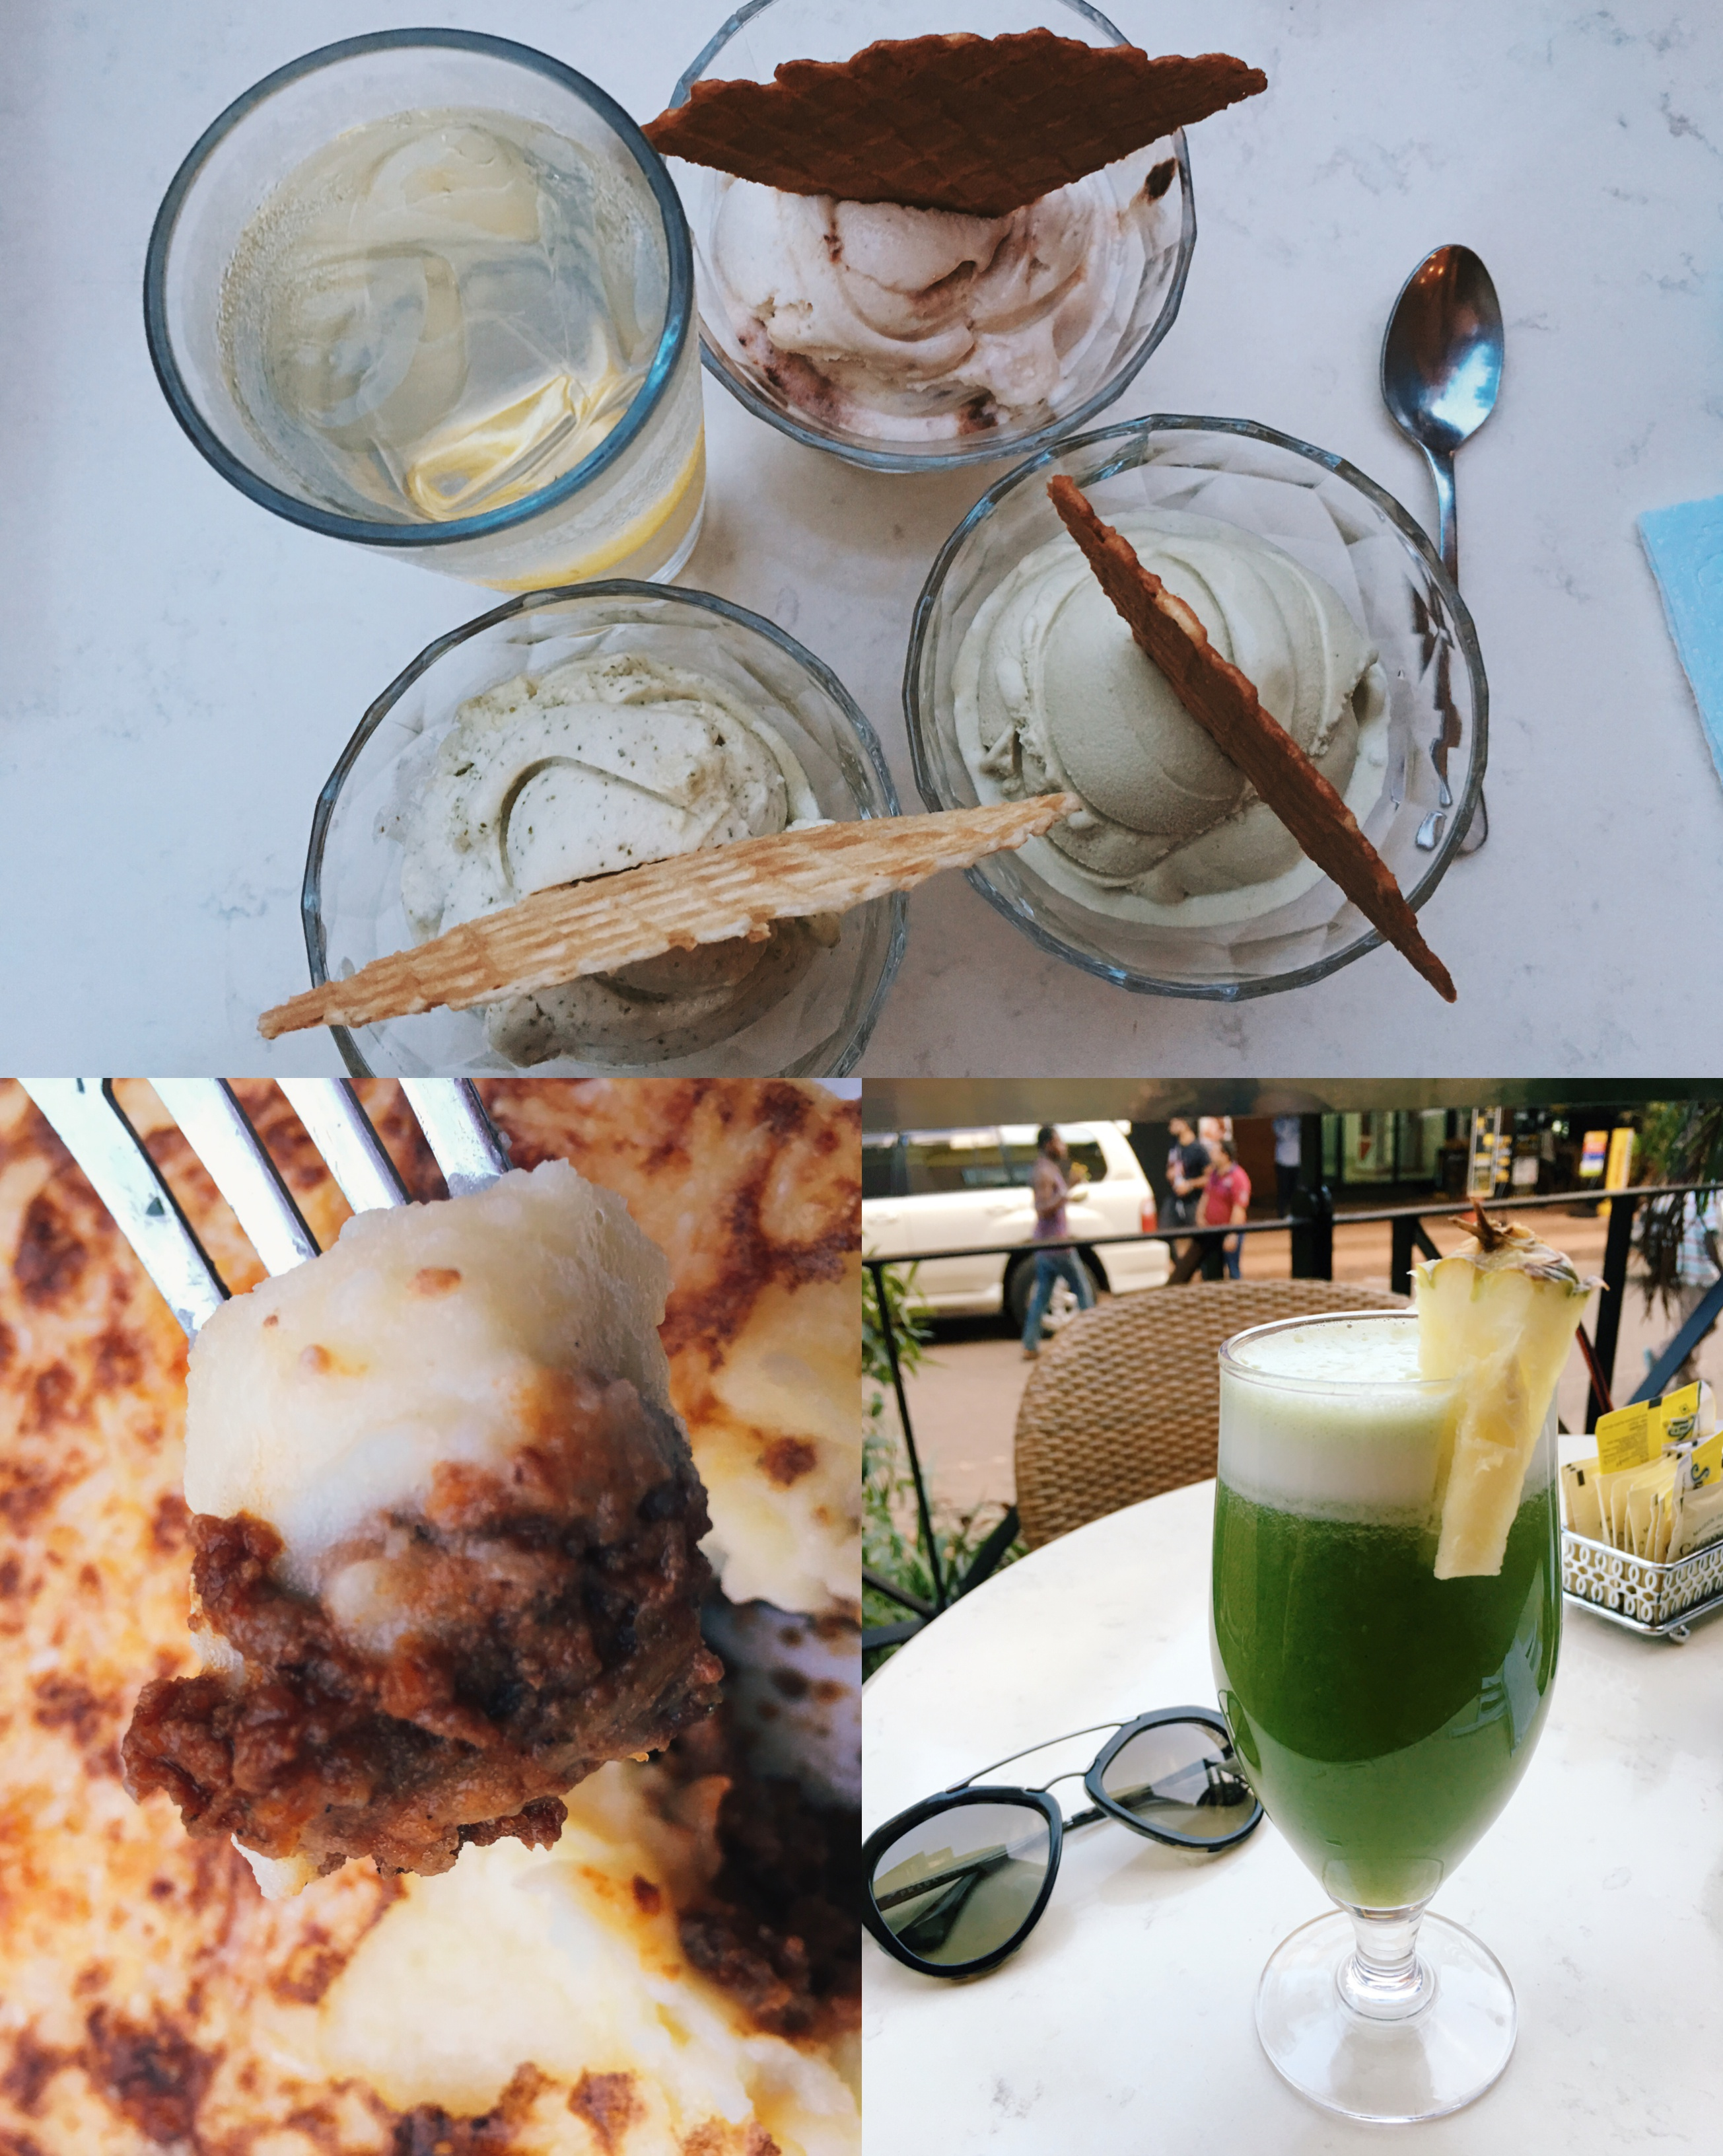 cafesserie, best restaurants places to eat to try in kampala, where to eat in uganda kampala, kampala uganda blogger, food blog kampala uganda, cafesserie restaurant hours review, la patisserie